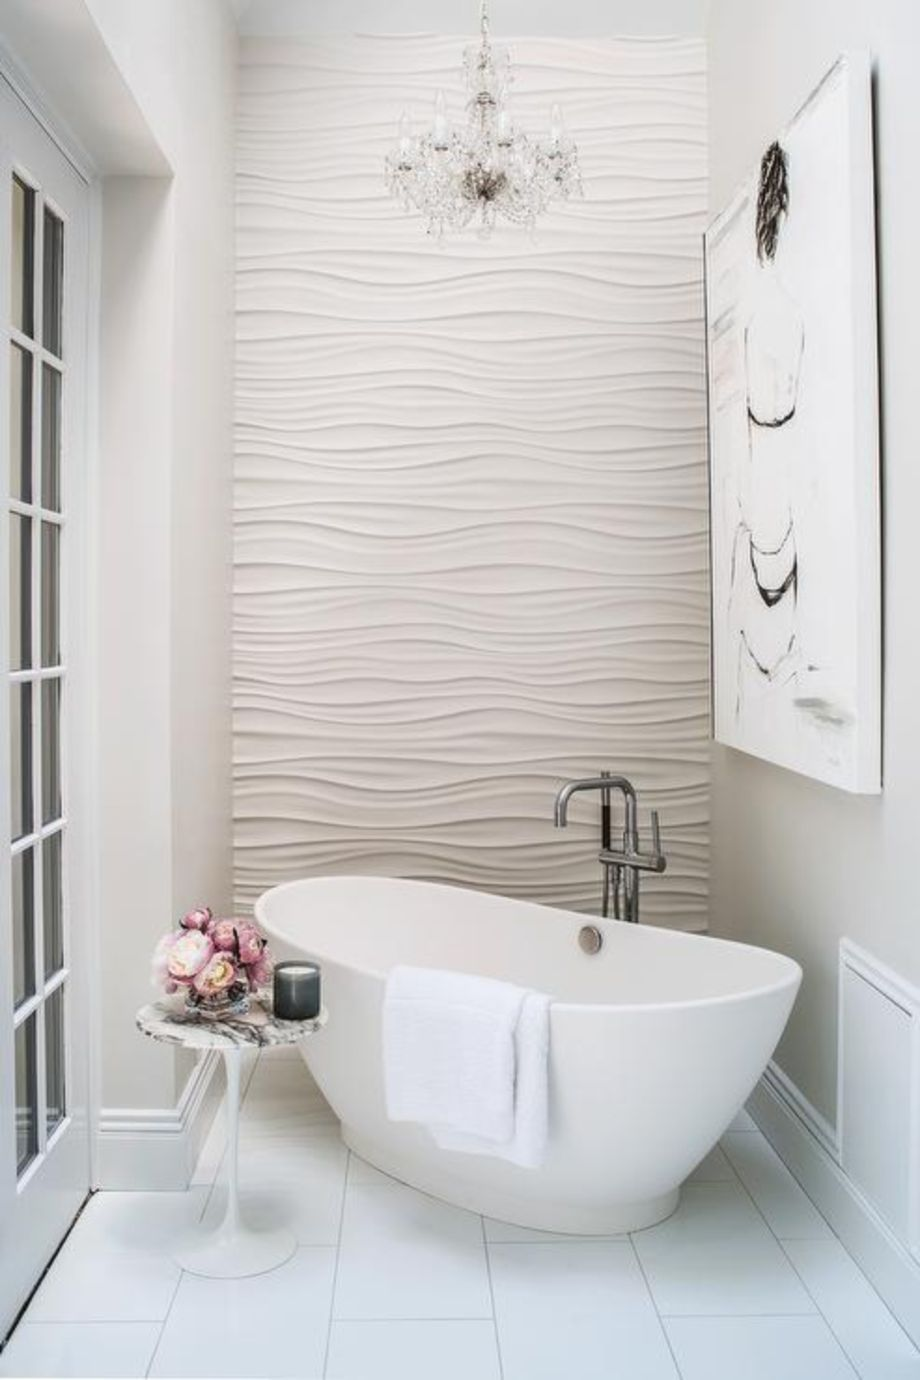 Stylish white subway tile bathroom 42 - Round Decor